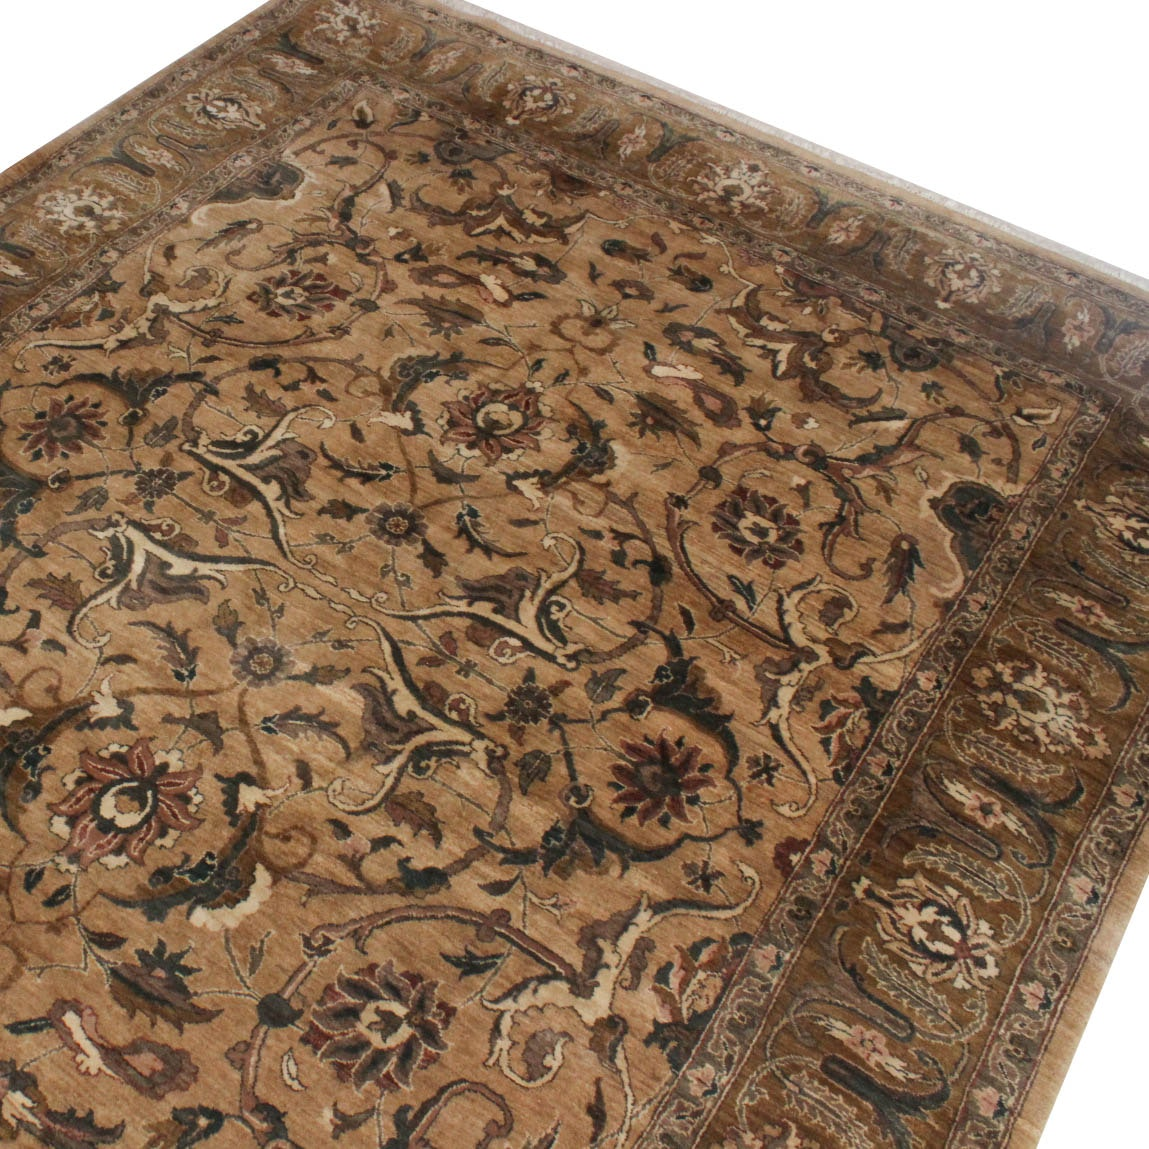 Hand-Knotted Indo-Persian Indian Kaimuri Room Size Rug